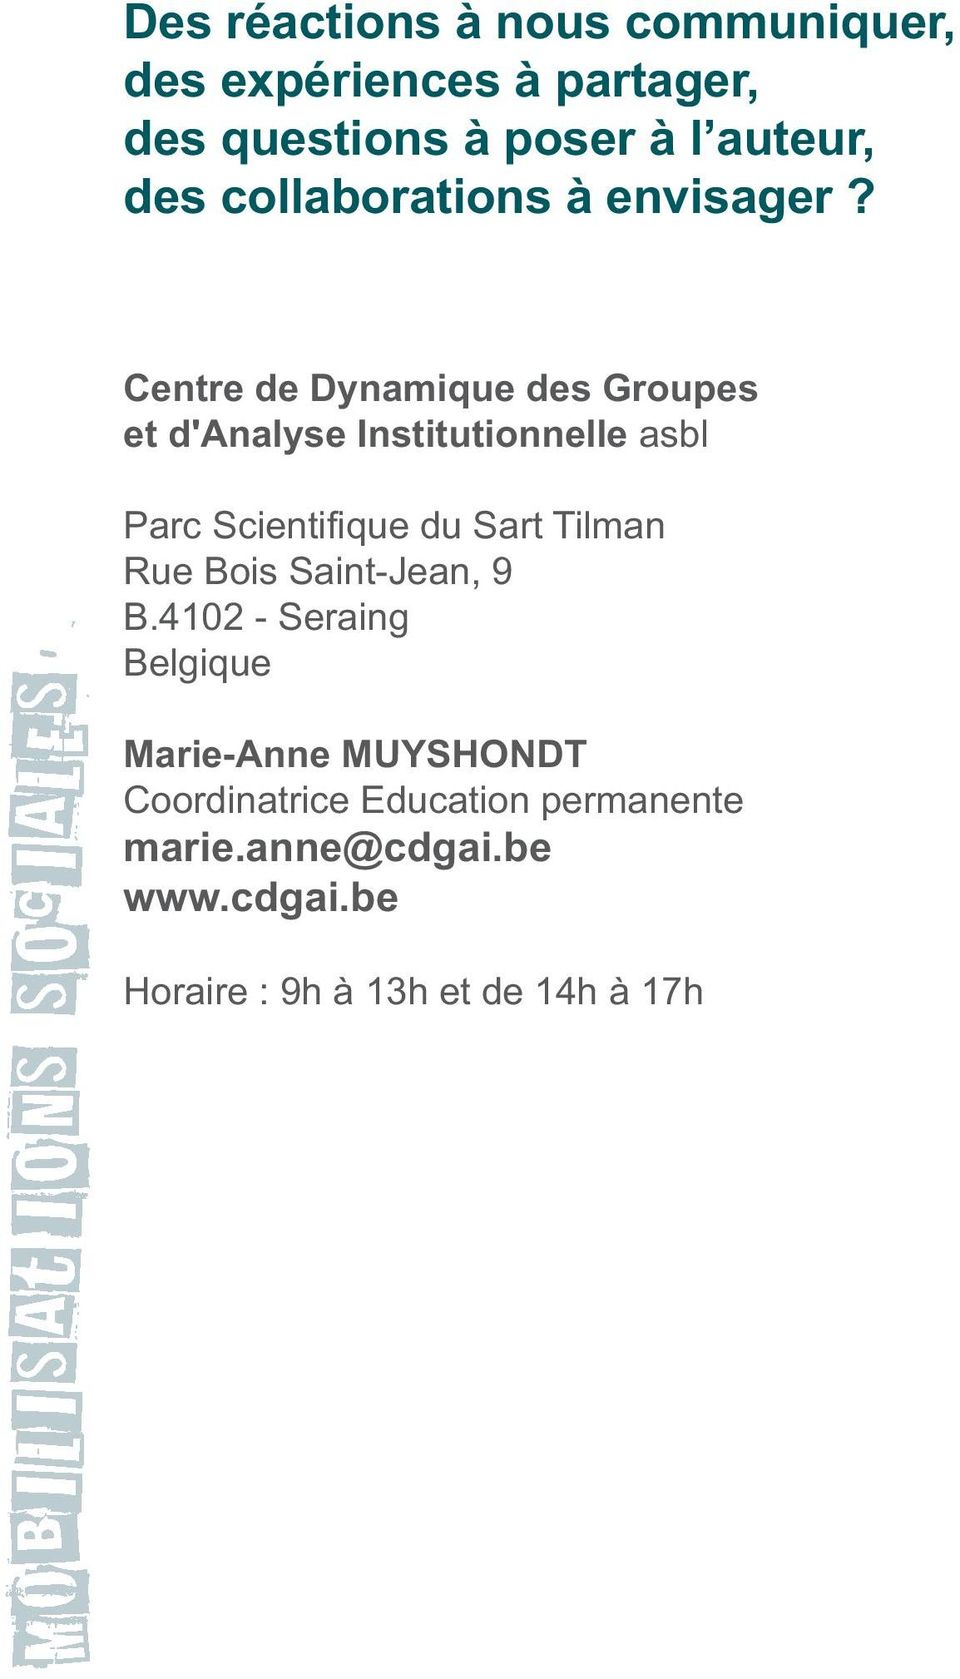 Centre de Dynamique des Groupes et d'analyse Institutionnelle asbl Parc Scientifique du Sart Tilman